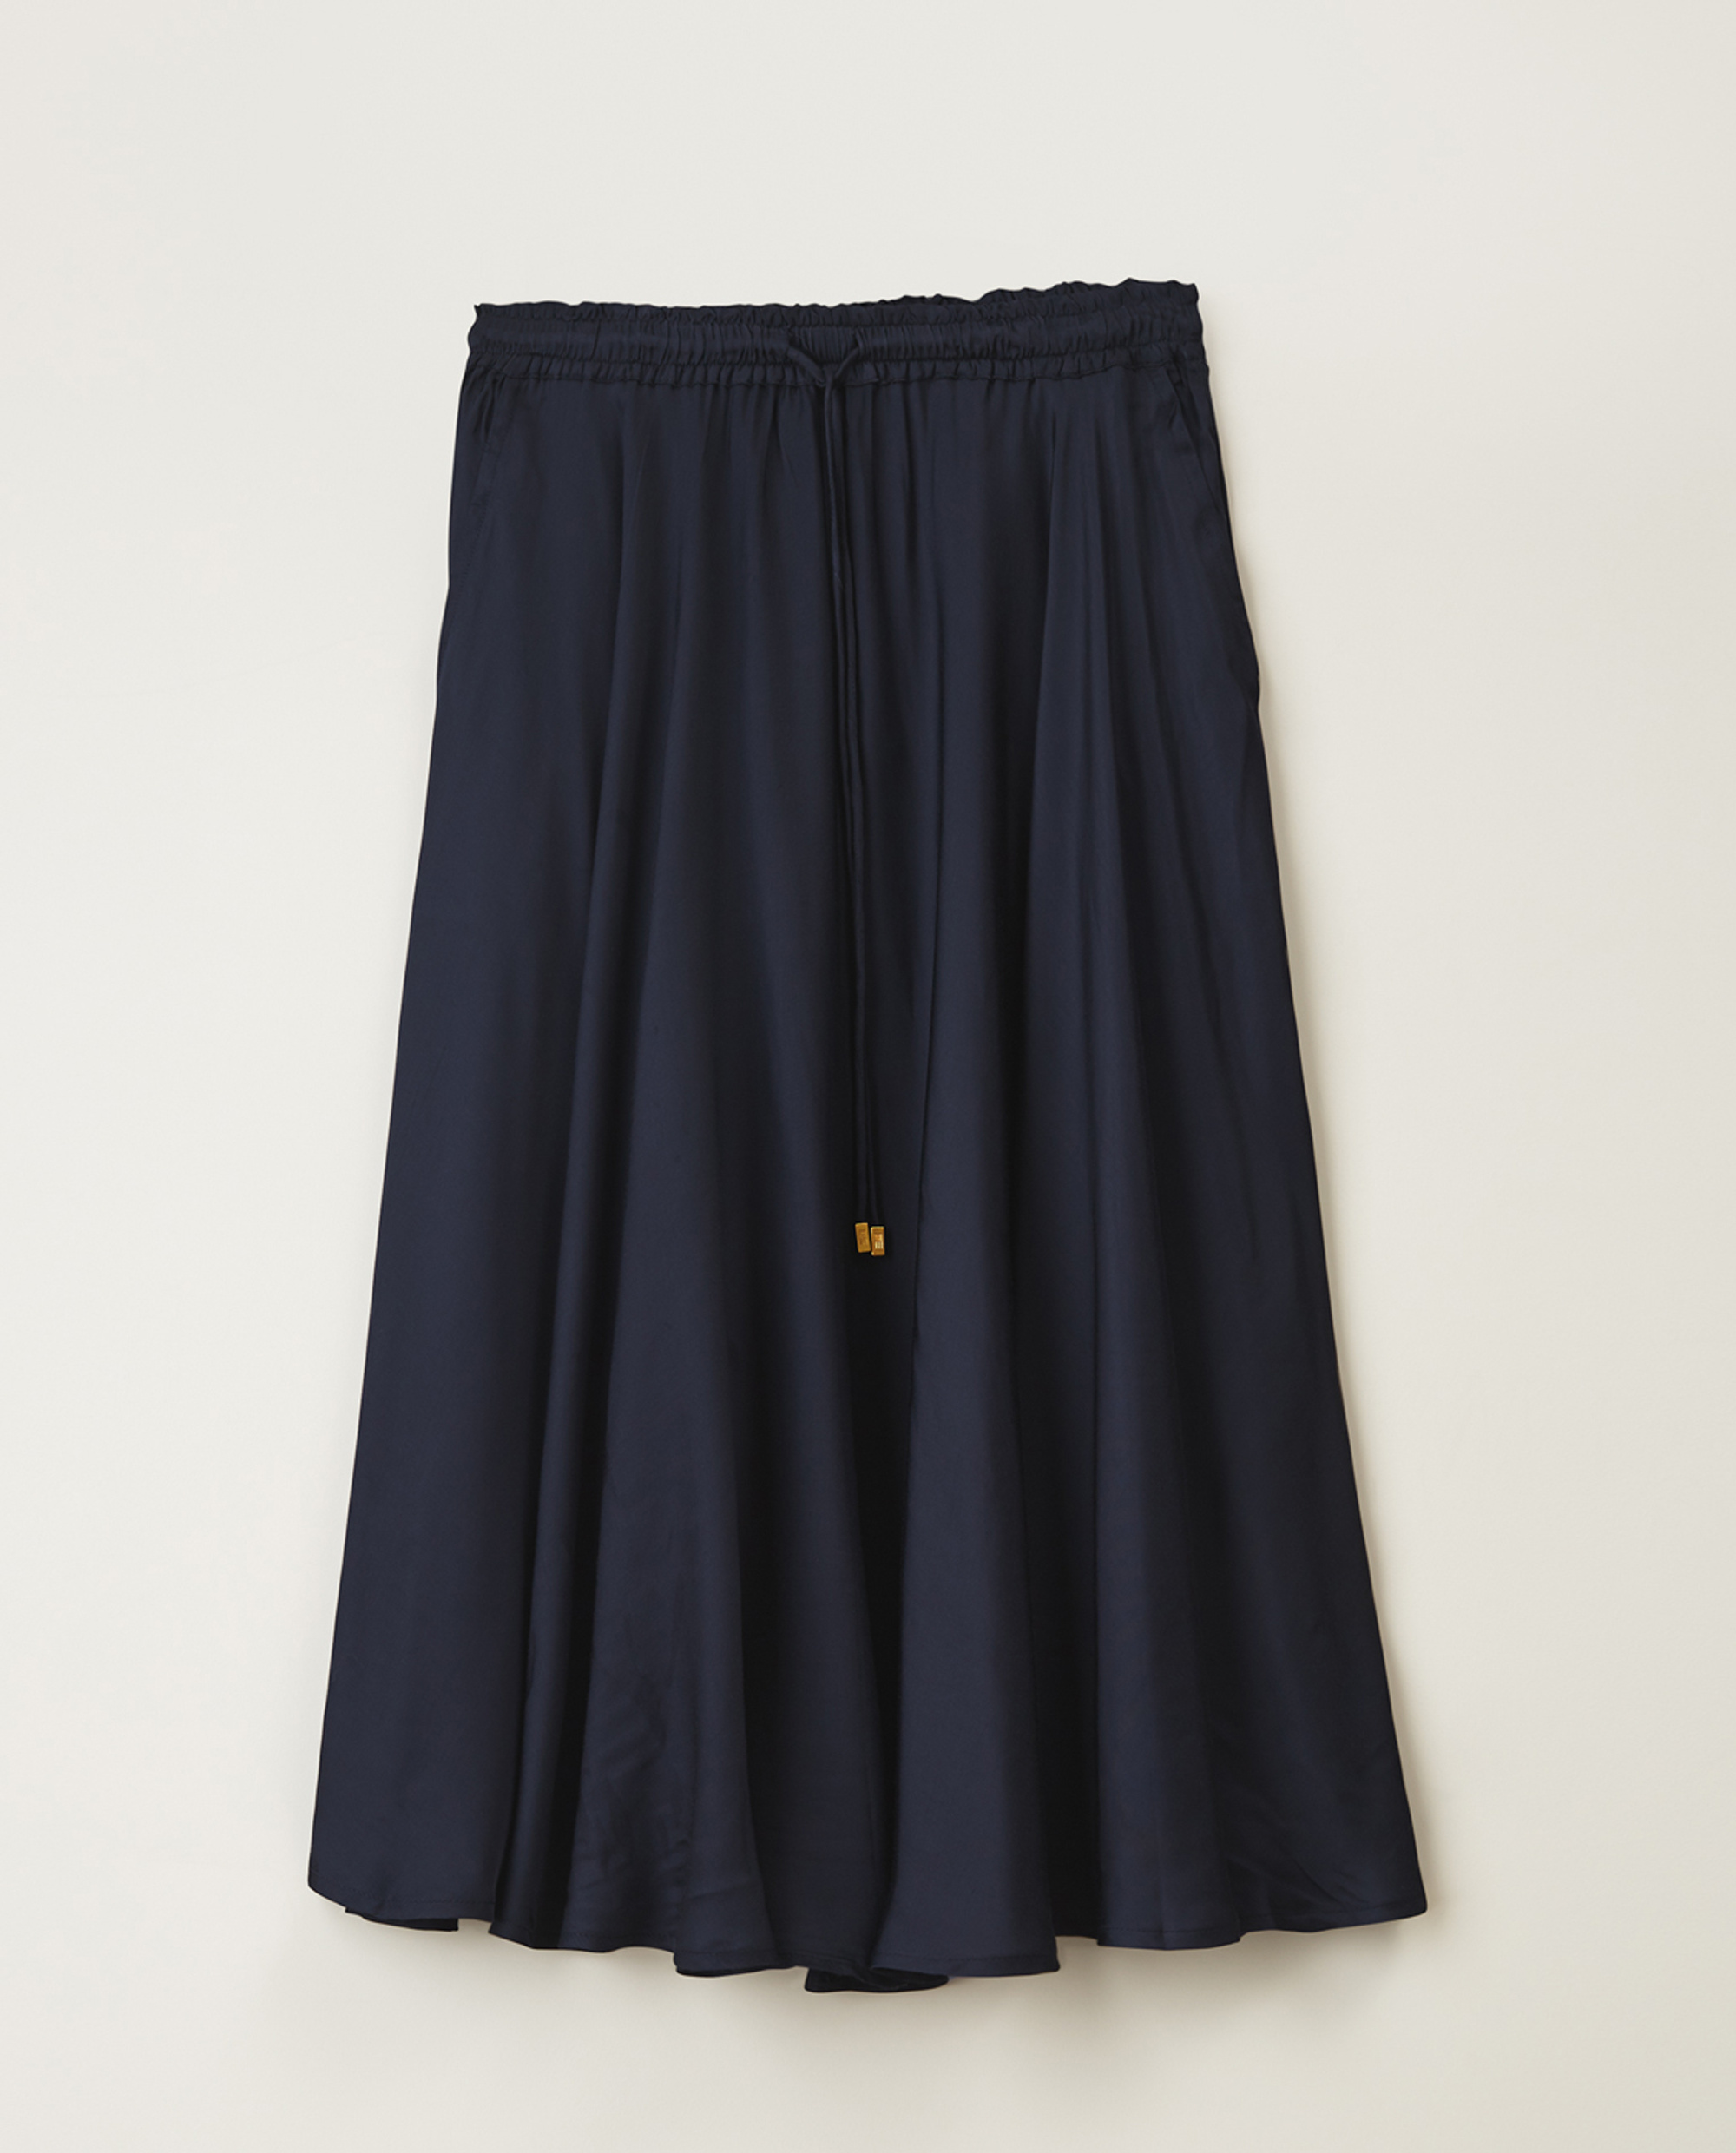 Della Satin Skirt, Dark Blue